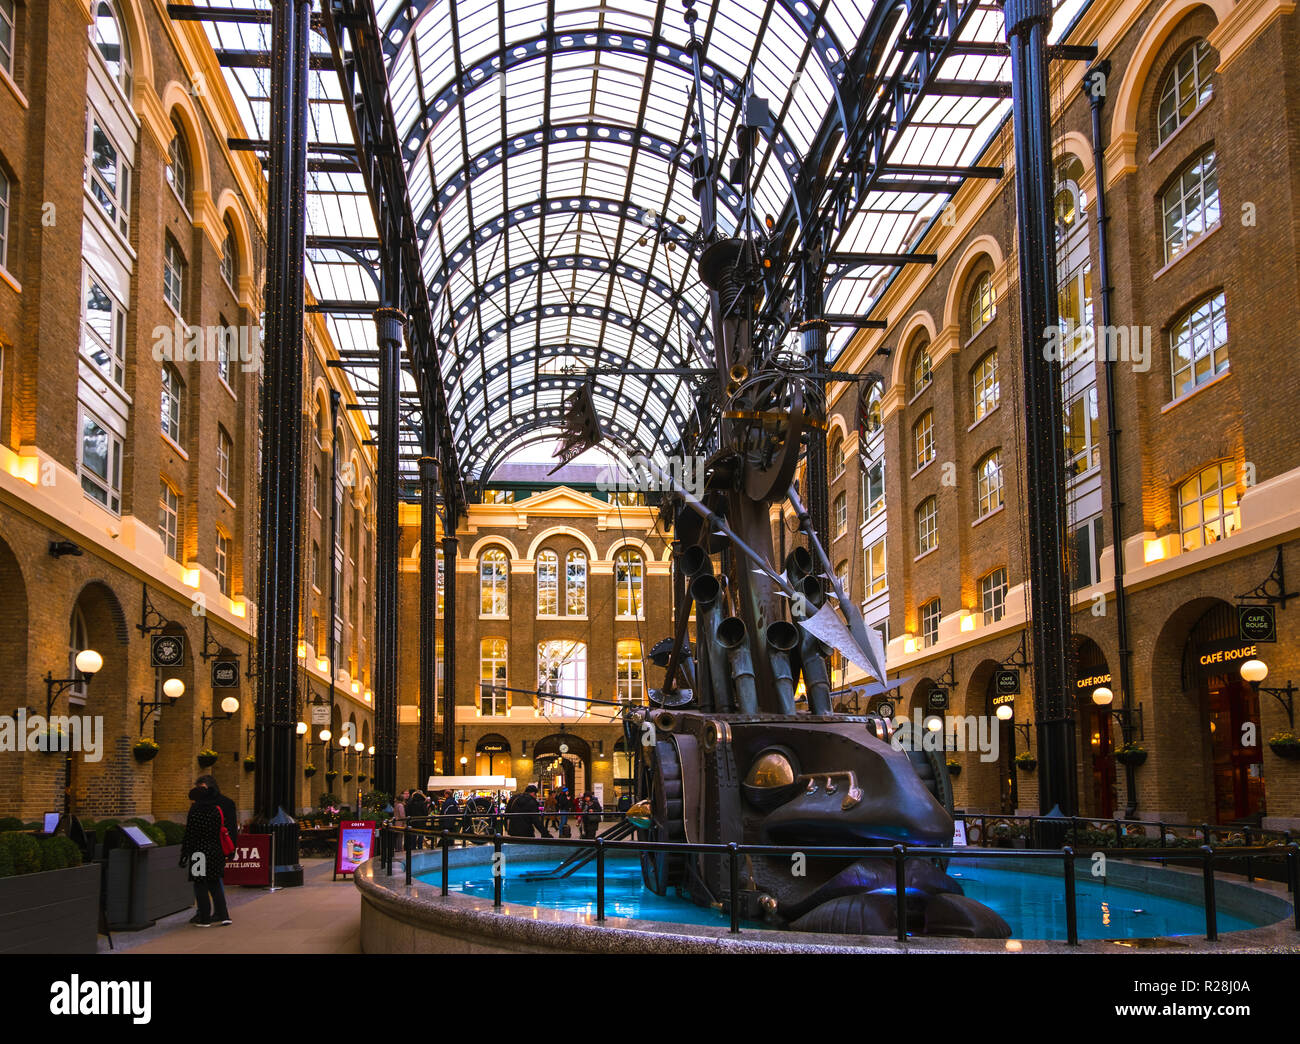 LONDON, UK - March 20 2018: Wide view of Hay's Galleria, which was originally a warehouse known as Hay's Wharf, then was redeveloped as mixed use reta - Stock Image